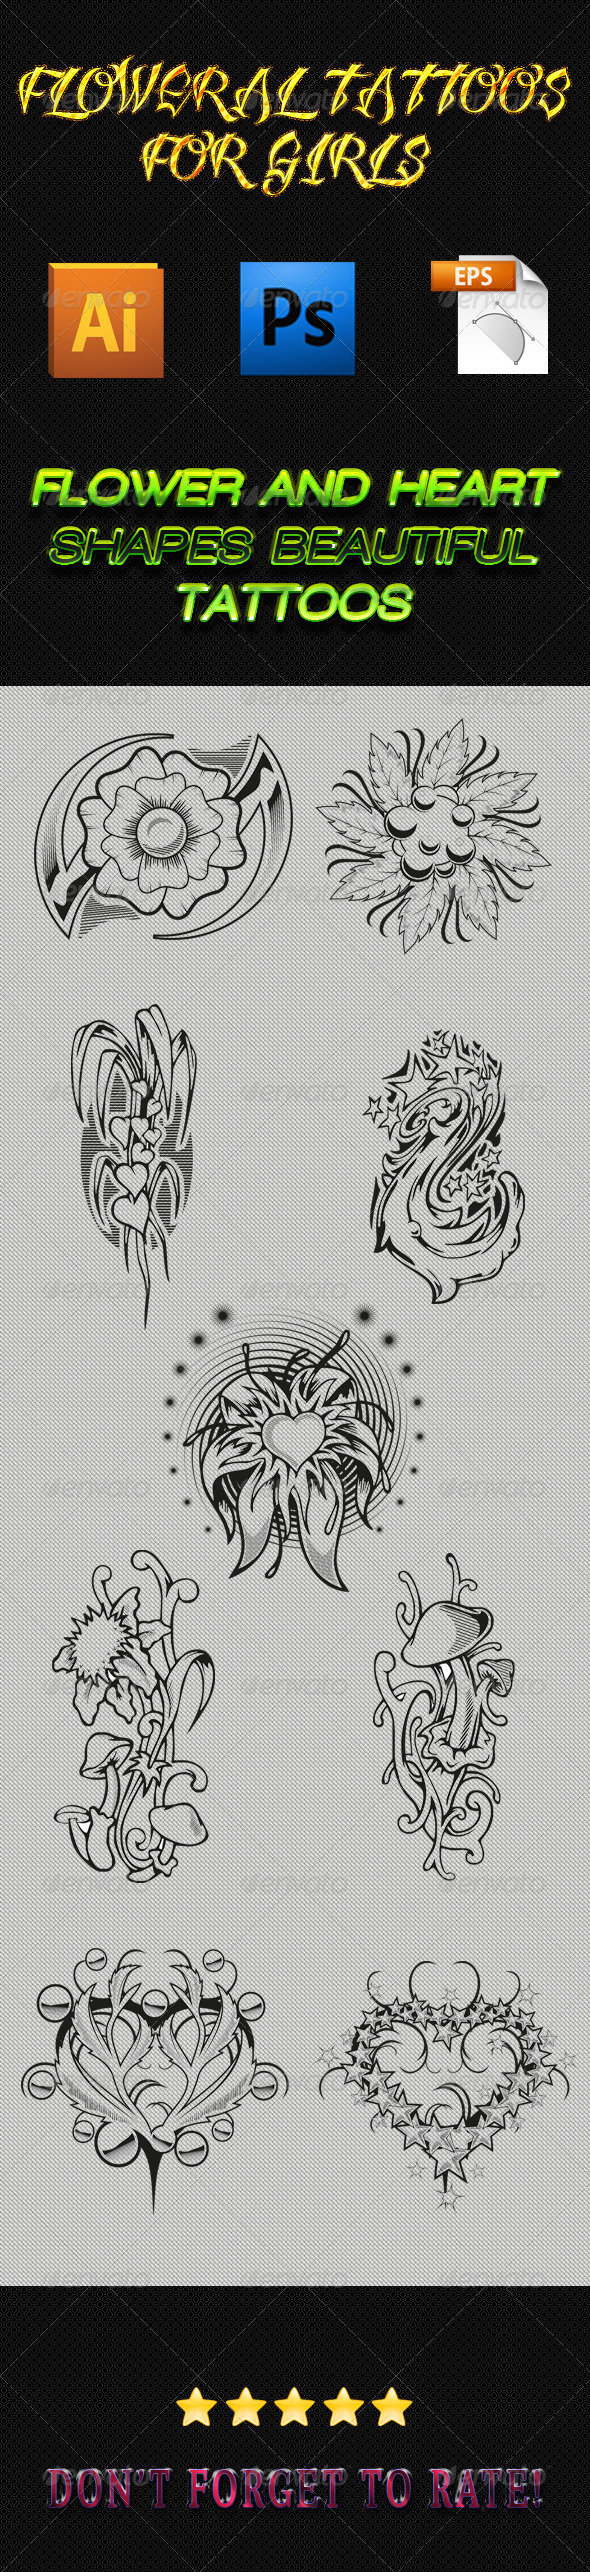 GraphicRiver Tattoos for Girls 01 6269153